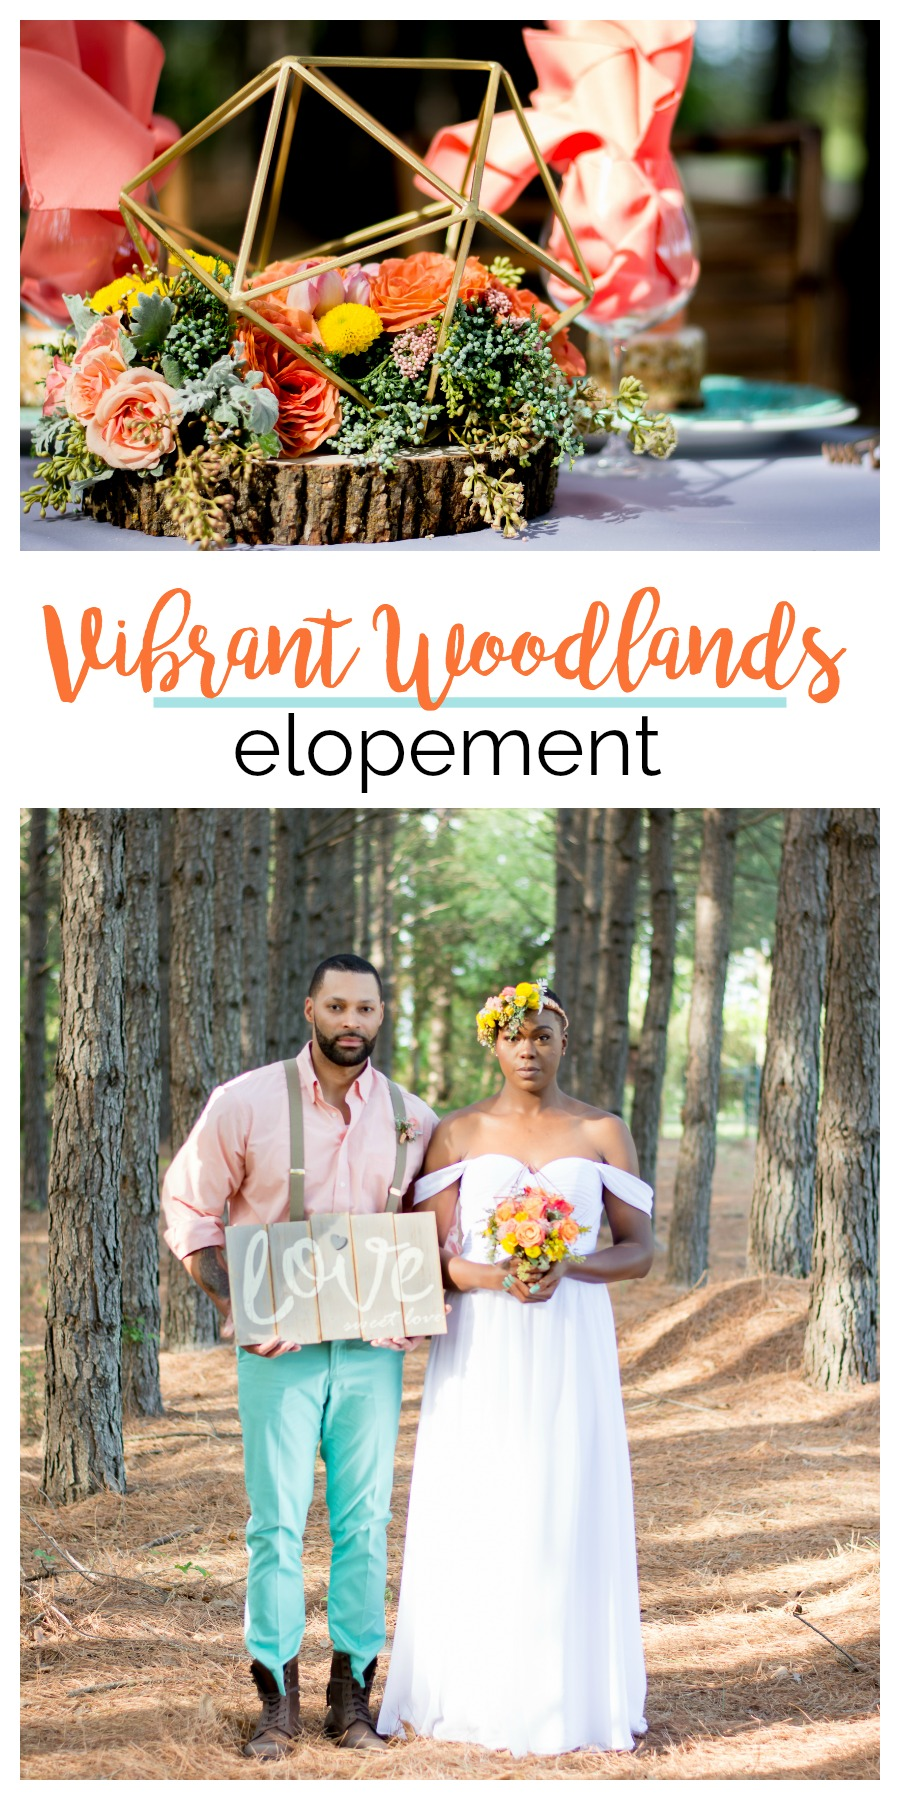 Wedding Inspiration: Vibrant Woodlands Elopement | Palmetto State Weddings | Photography by Denise Benson Photography | Rock Hill wedding